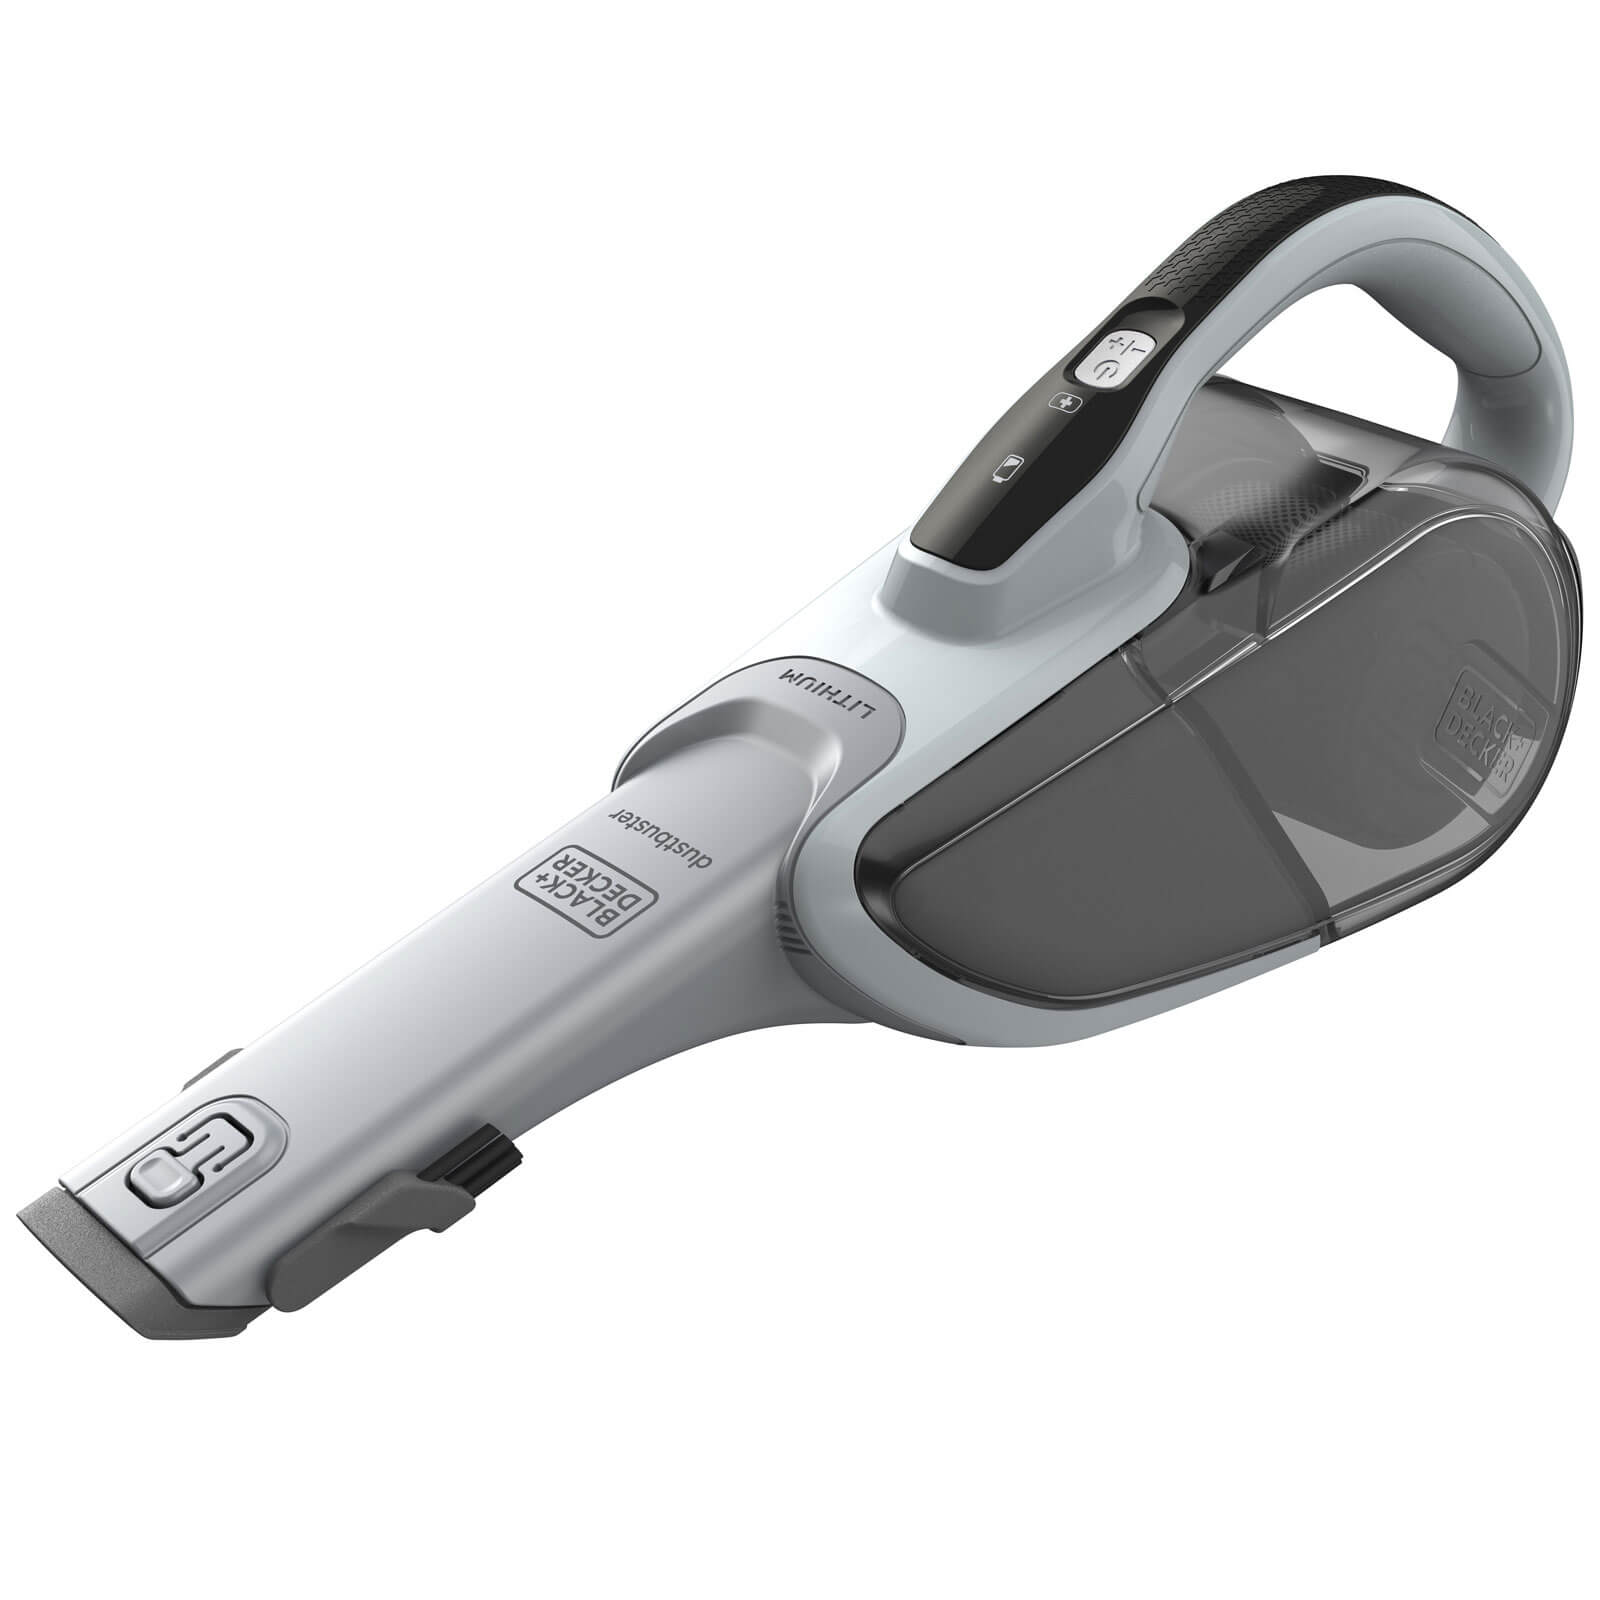 Black & Decker DVJ215J 7.2v Cordless Gen10 Cyclonic Dustbuster 1 x 1.5ah Integrated Li-ion Charger No Case